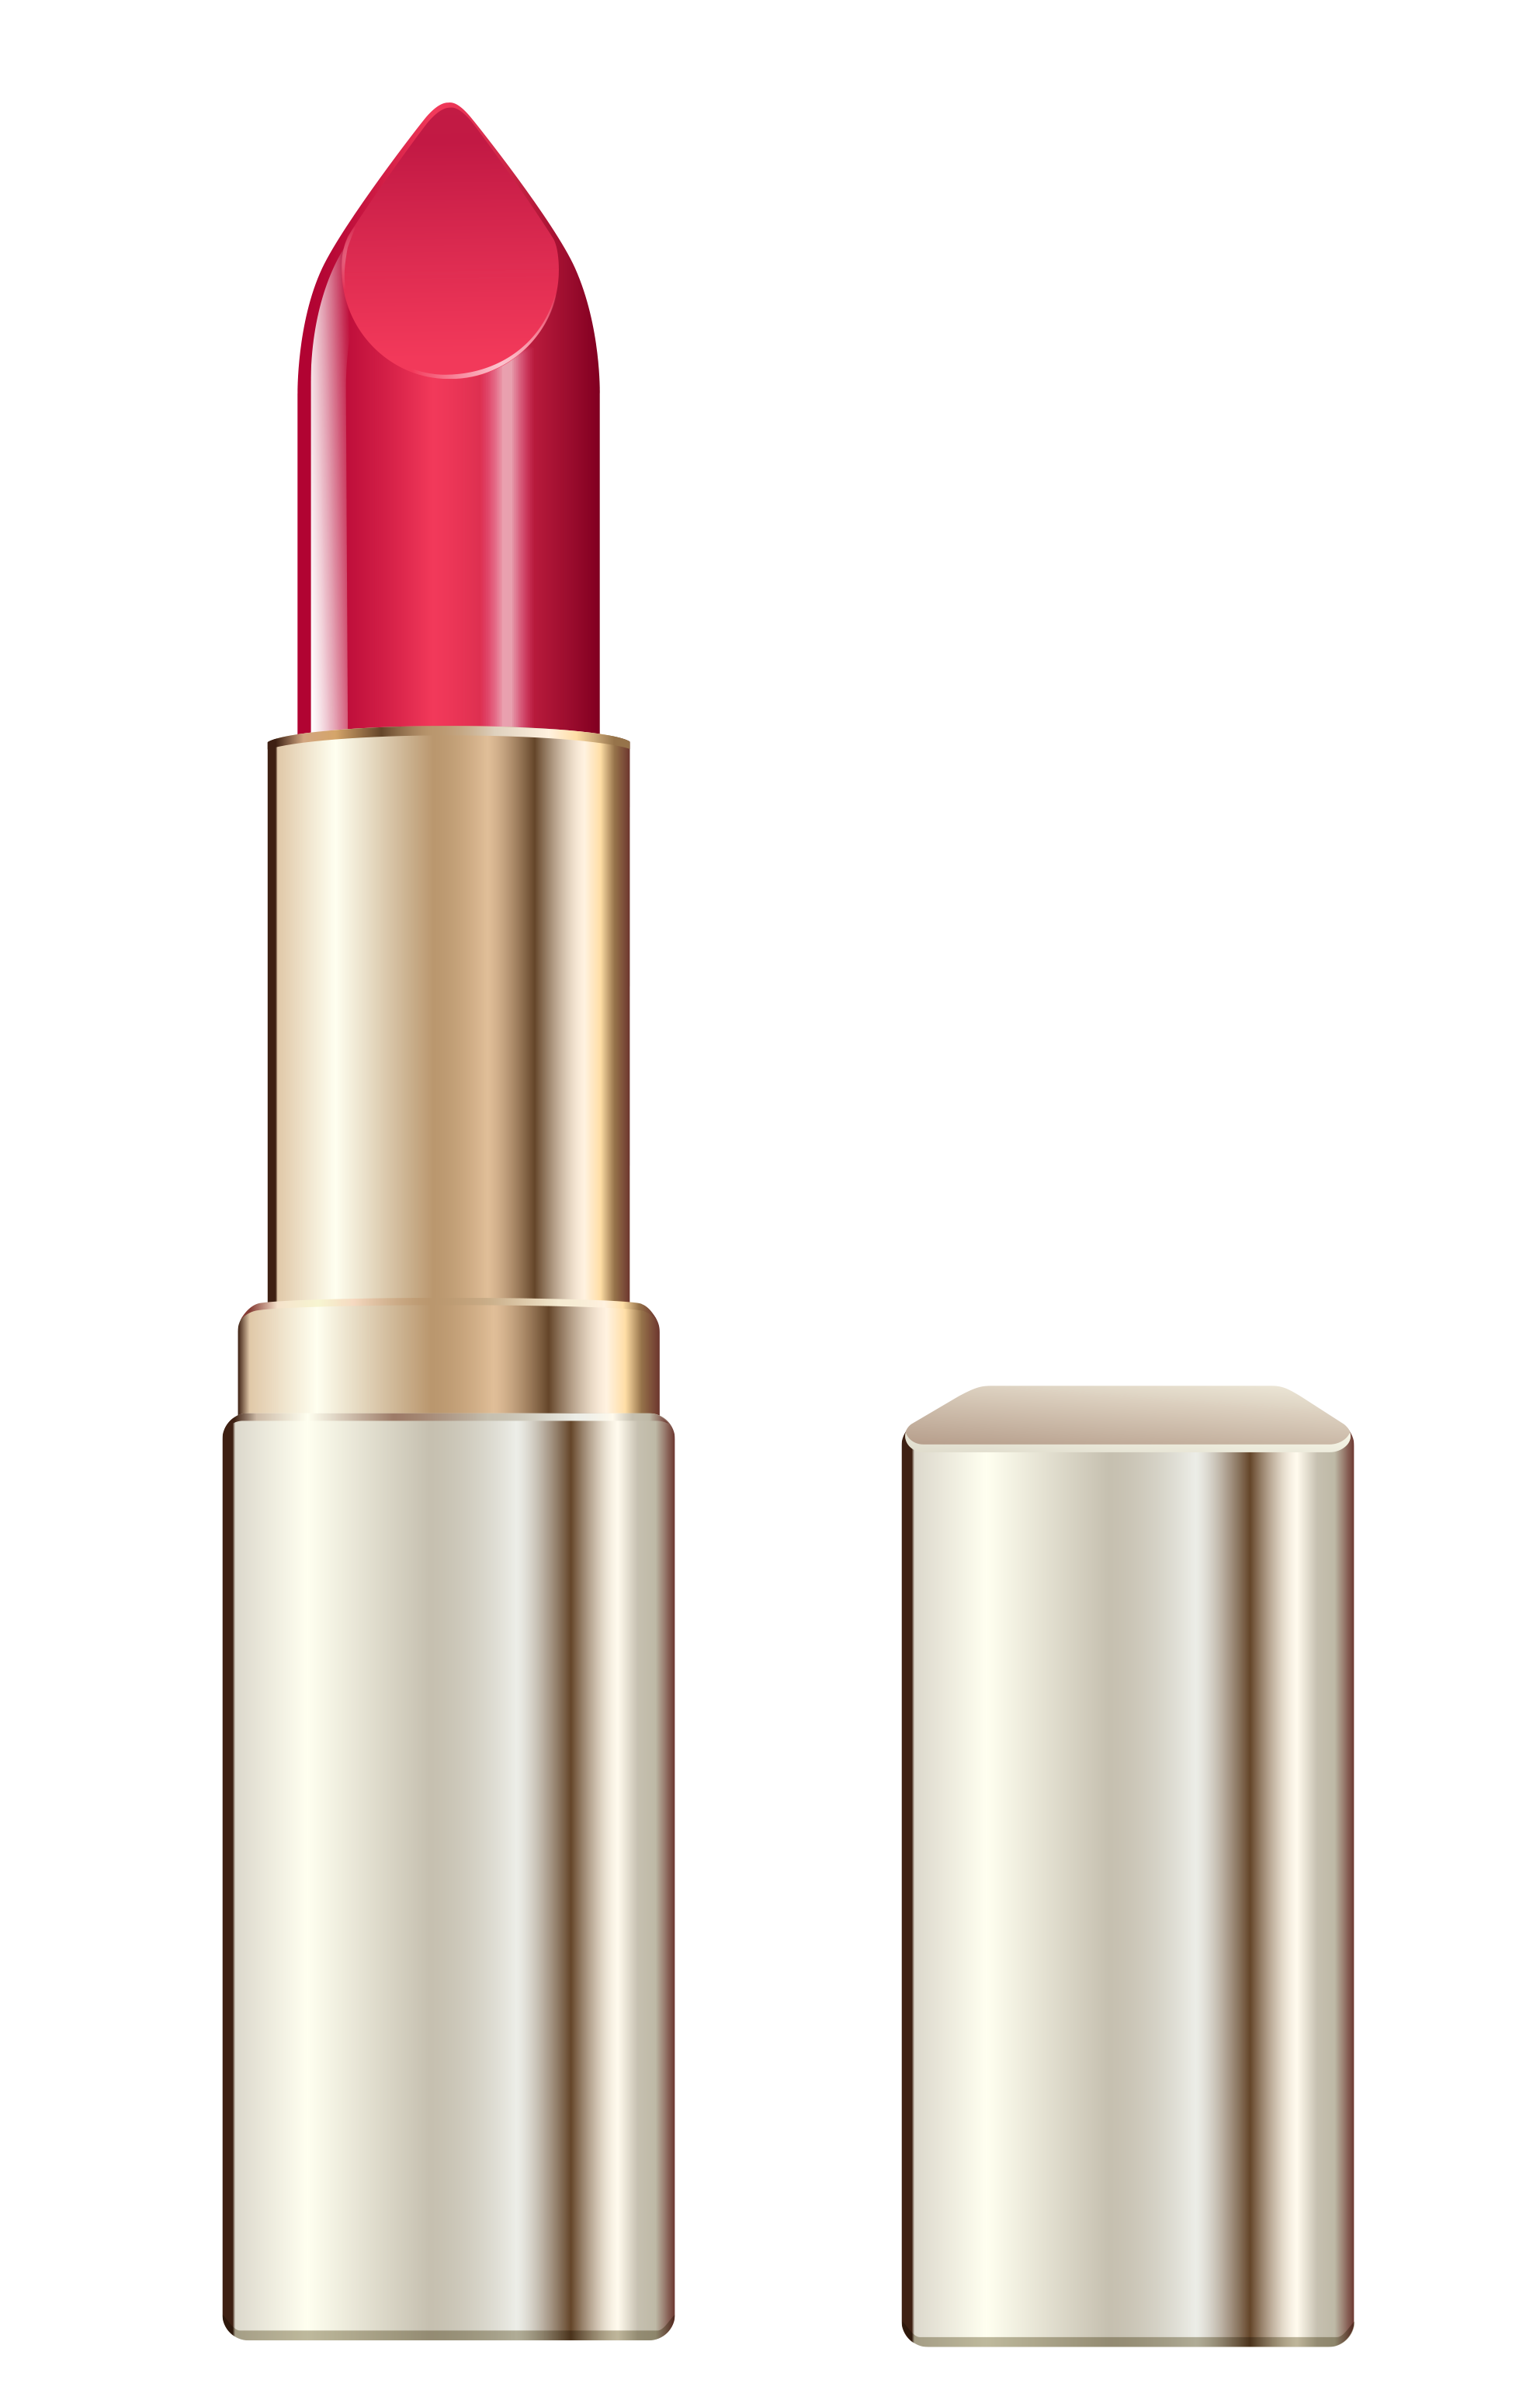 Png picture gallery yopriceville. Lipstick clipart pink lipstick